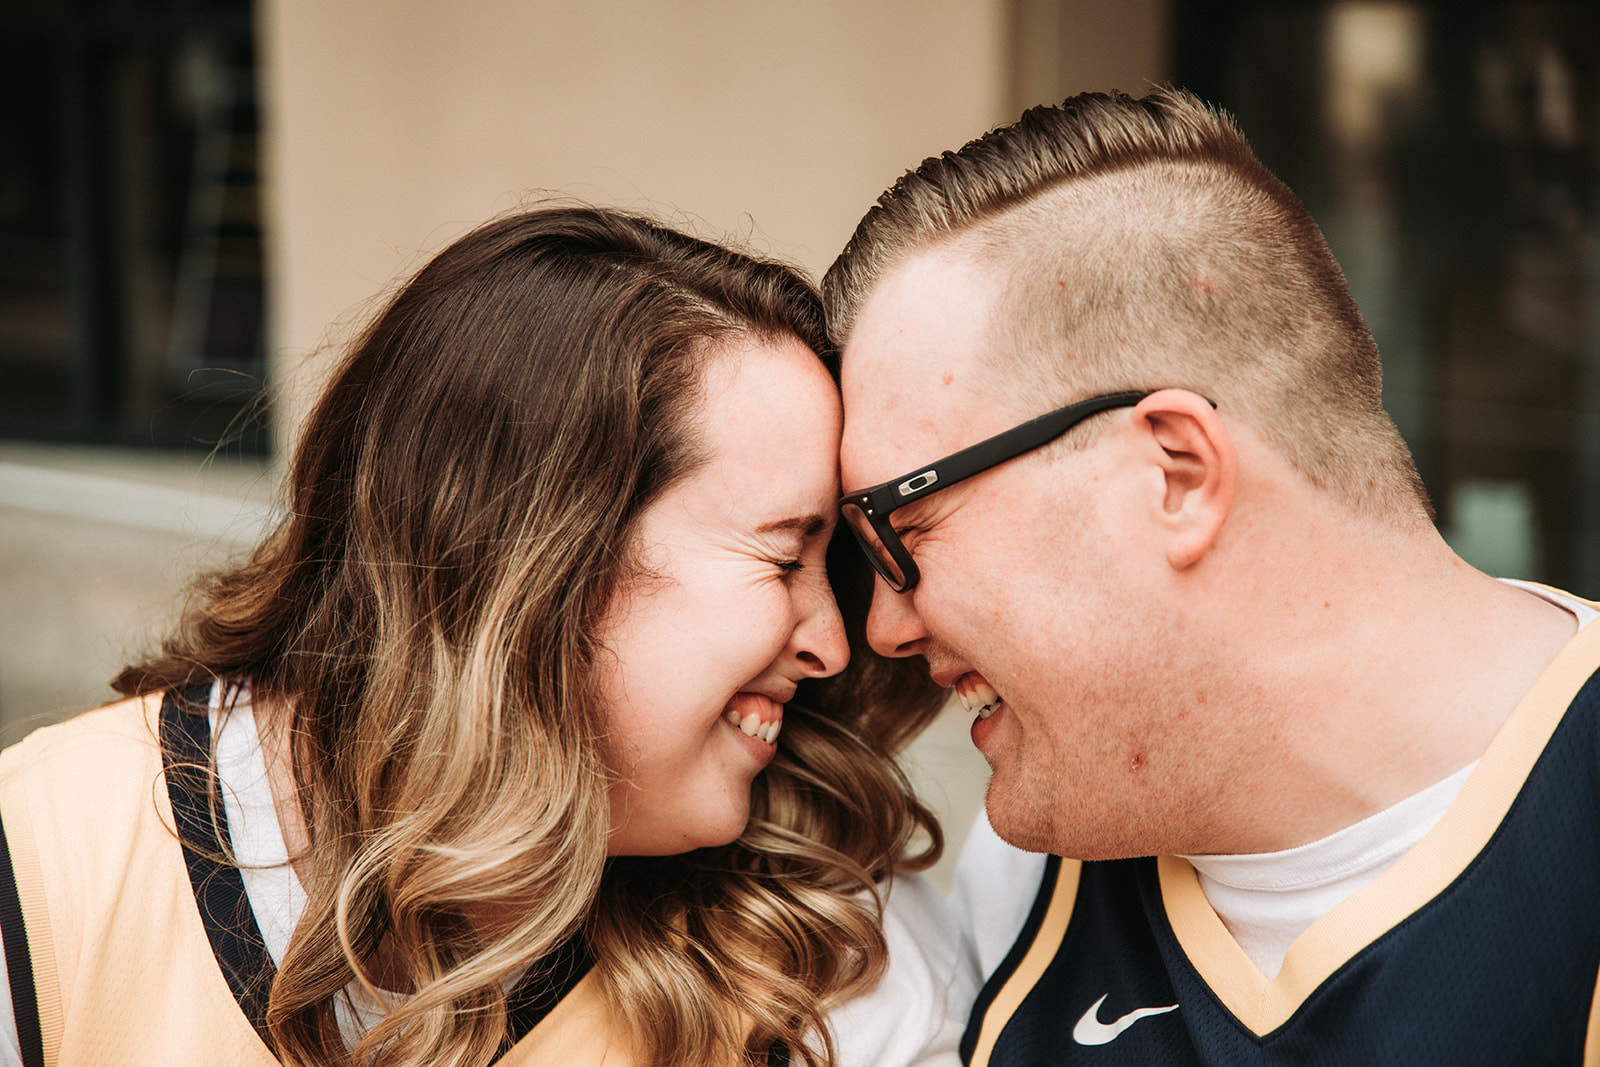 DowntownIndianapolisSpringEngagementPhotos-10.jpg